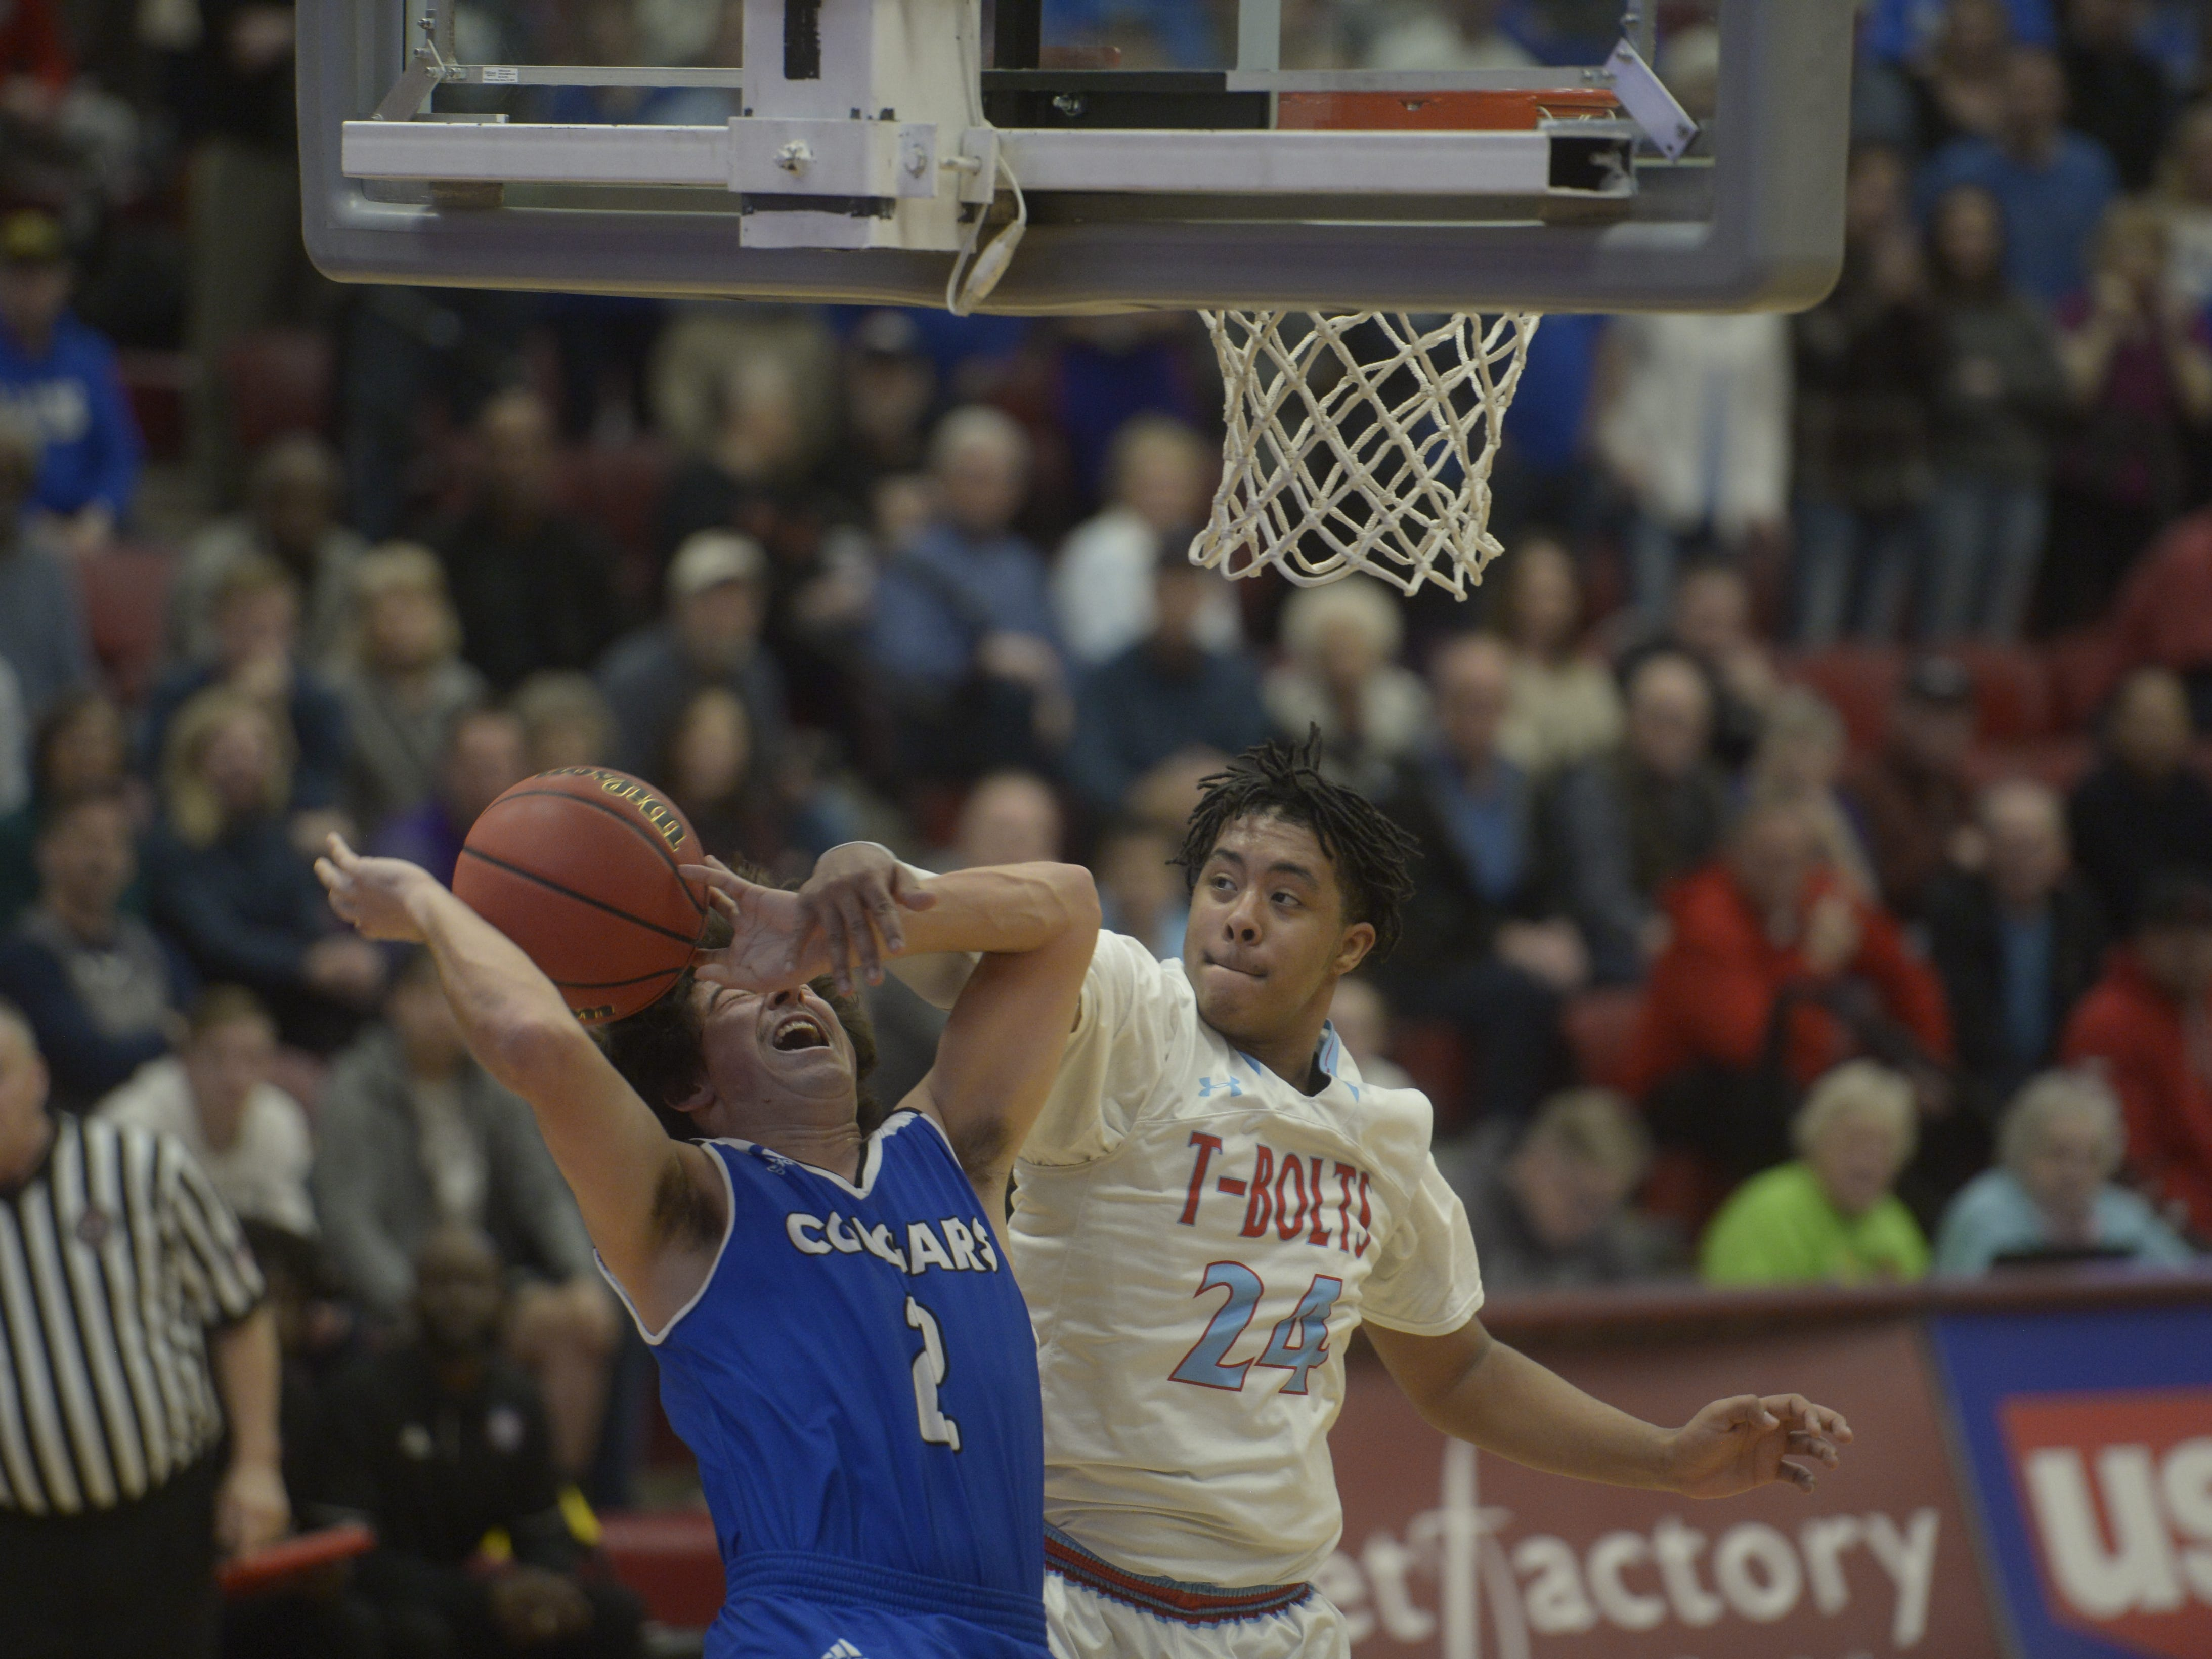 Resurrection Christian's Jackson Romero is fouled by Manual's Mekhi McGee during the Cougars' 84-68 loss to Manual in the Class 3A quarterfinals on Thursday at the University of Denver.